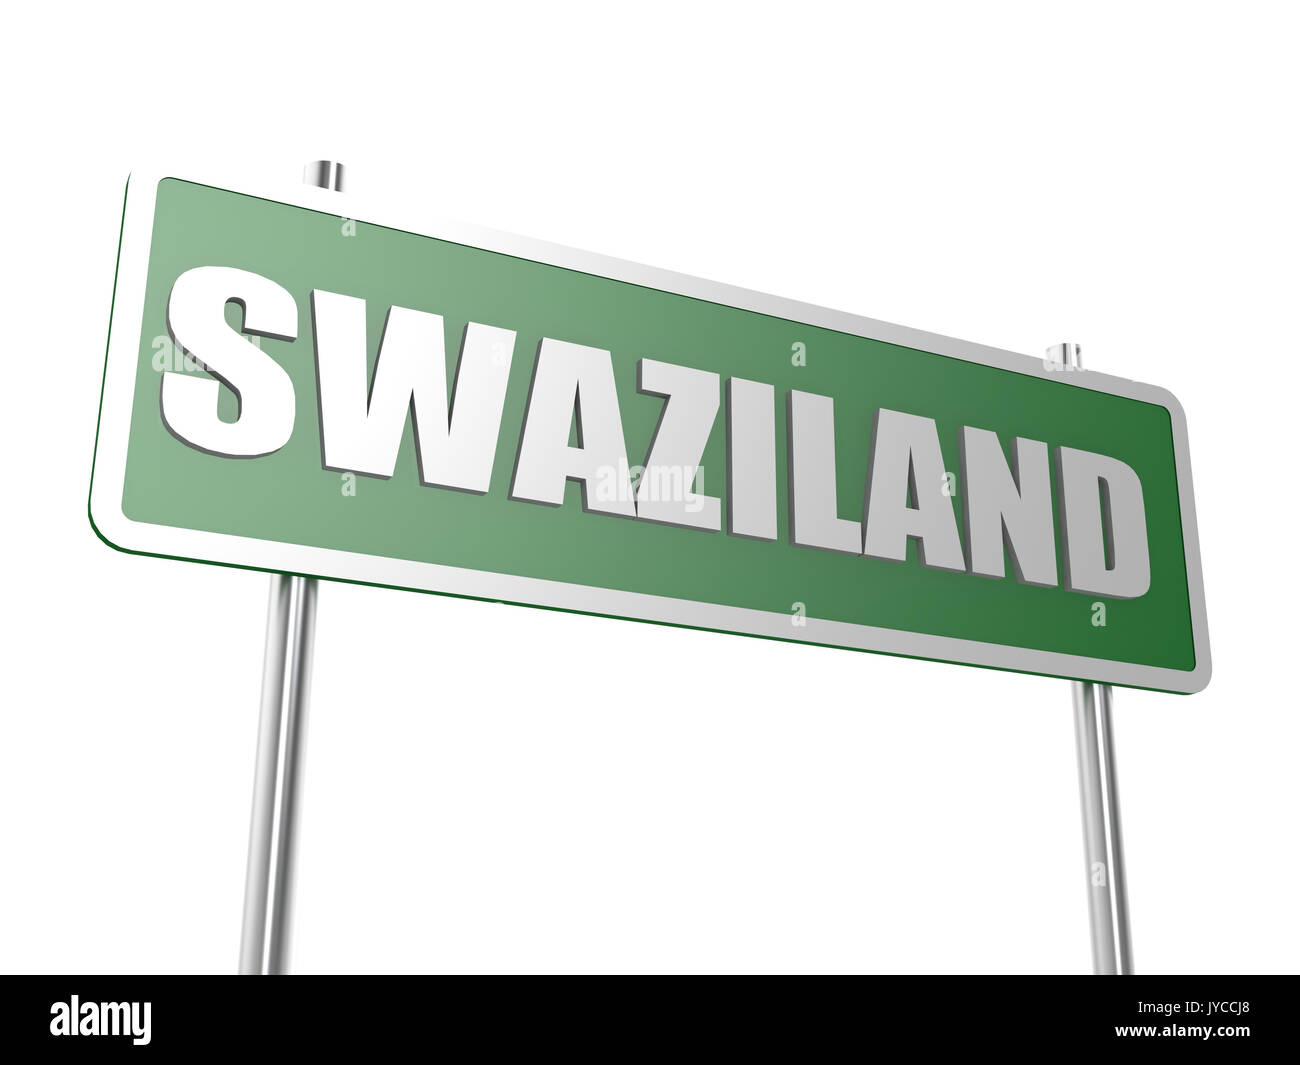 Swaziland image with hi-res rendered artwork that could be used for any graphic design. Stock Photo